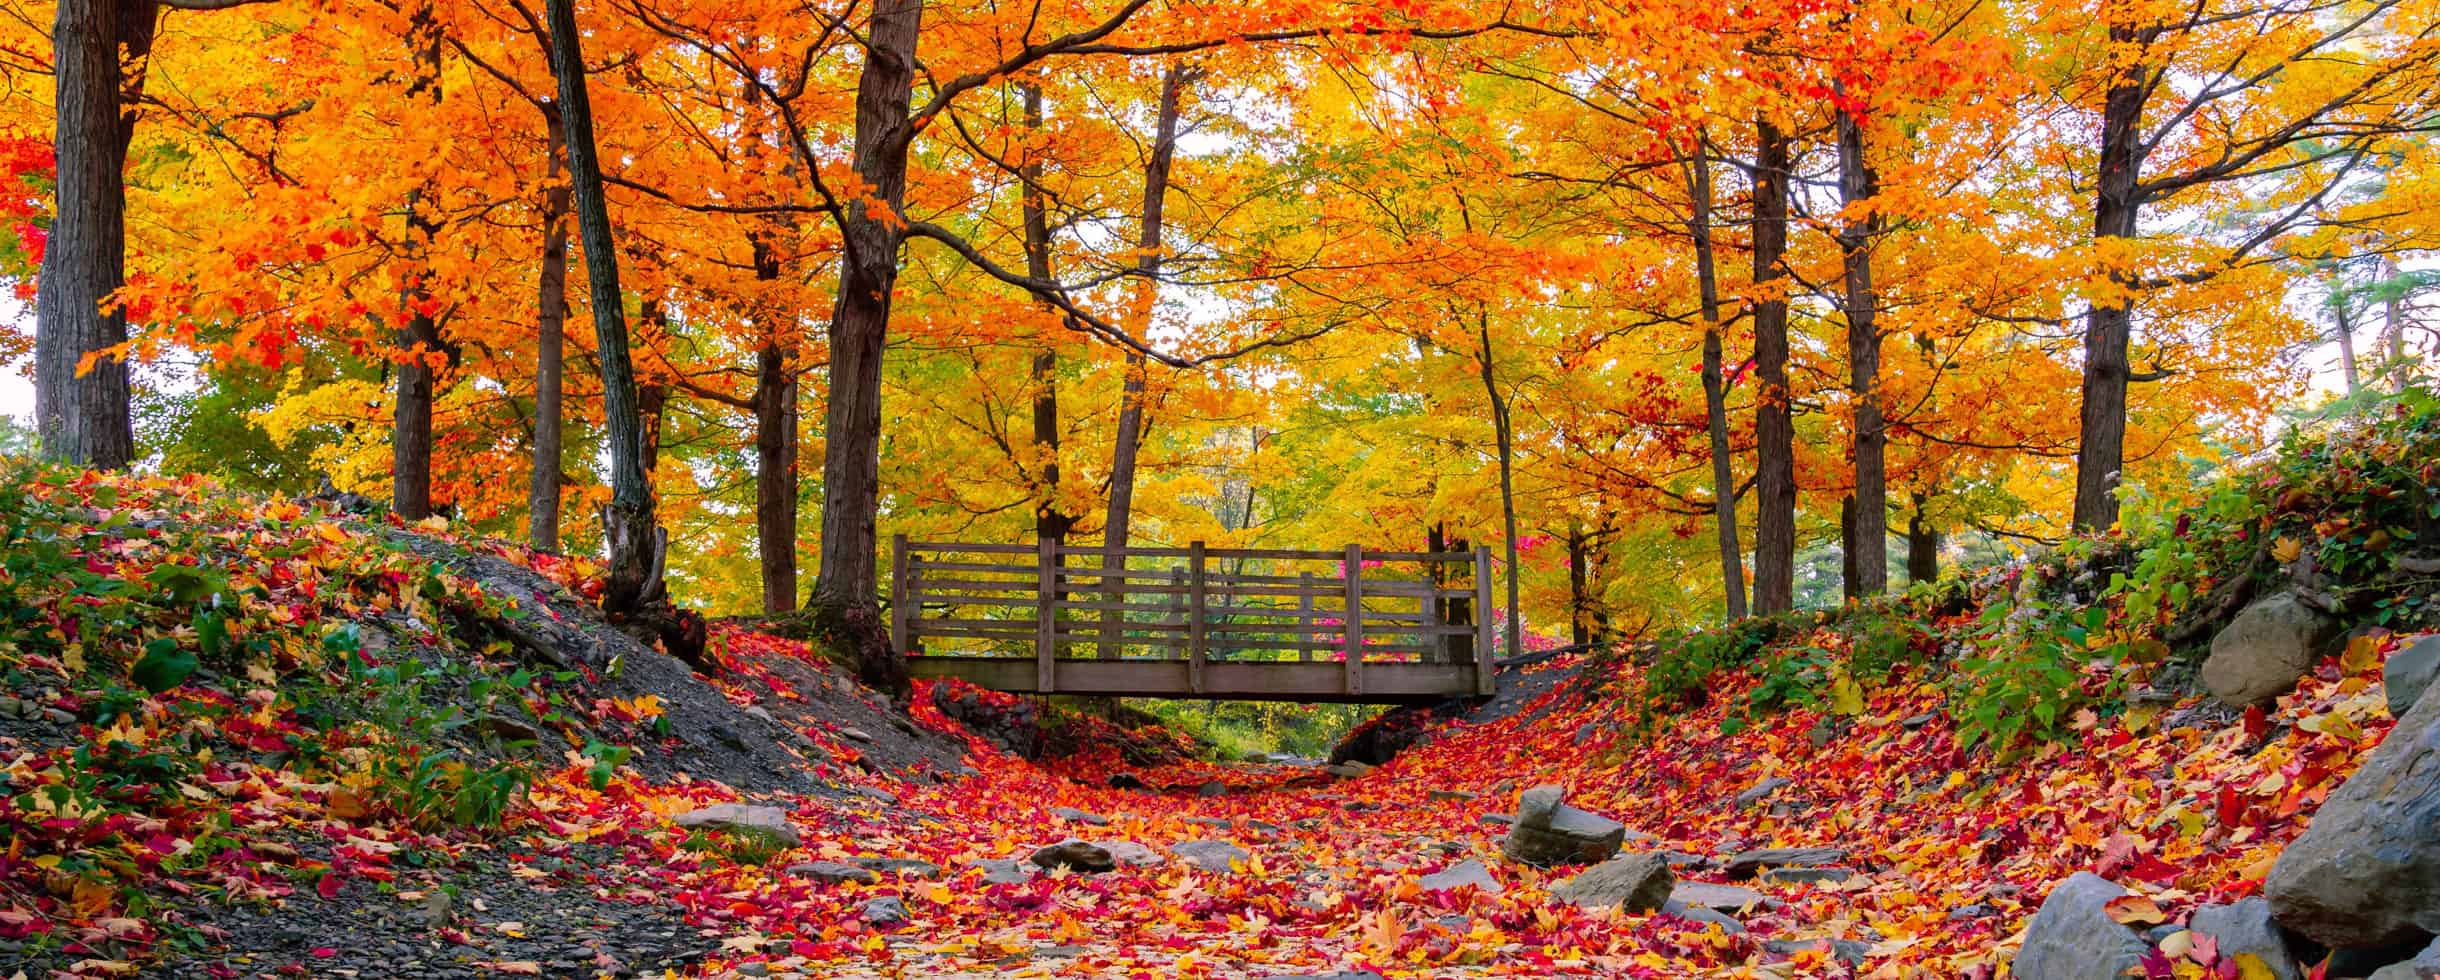 Autumn leaves and a bridge over a dry creek bed